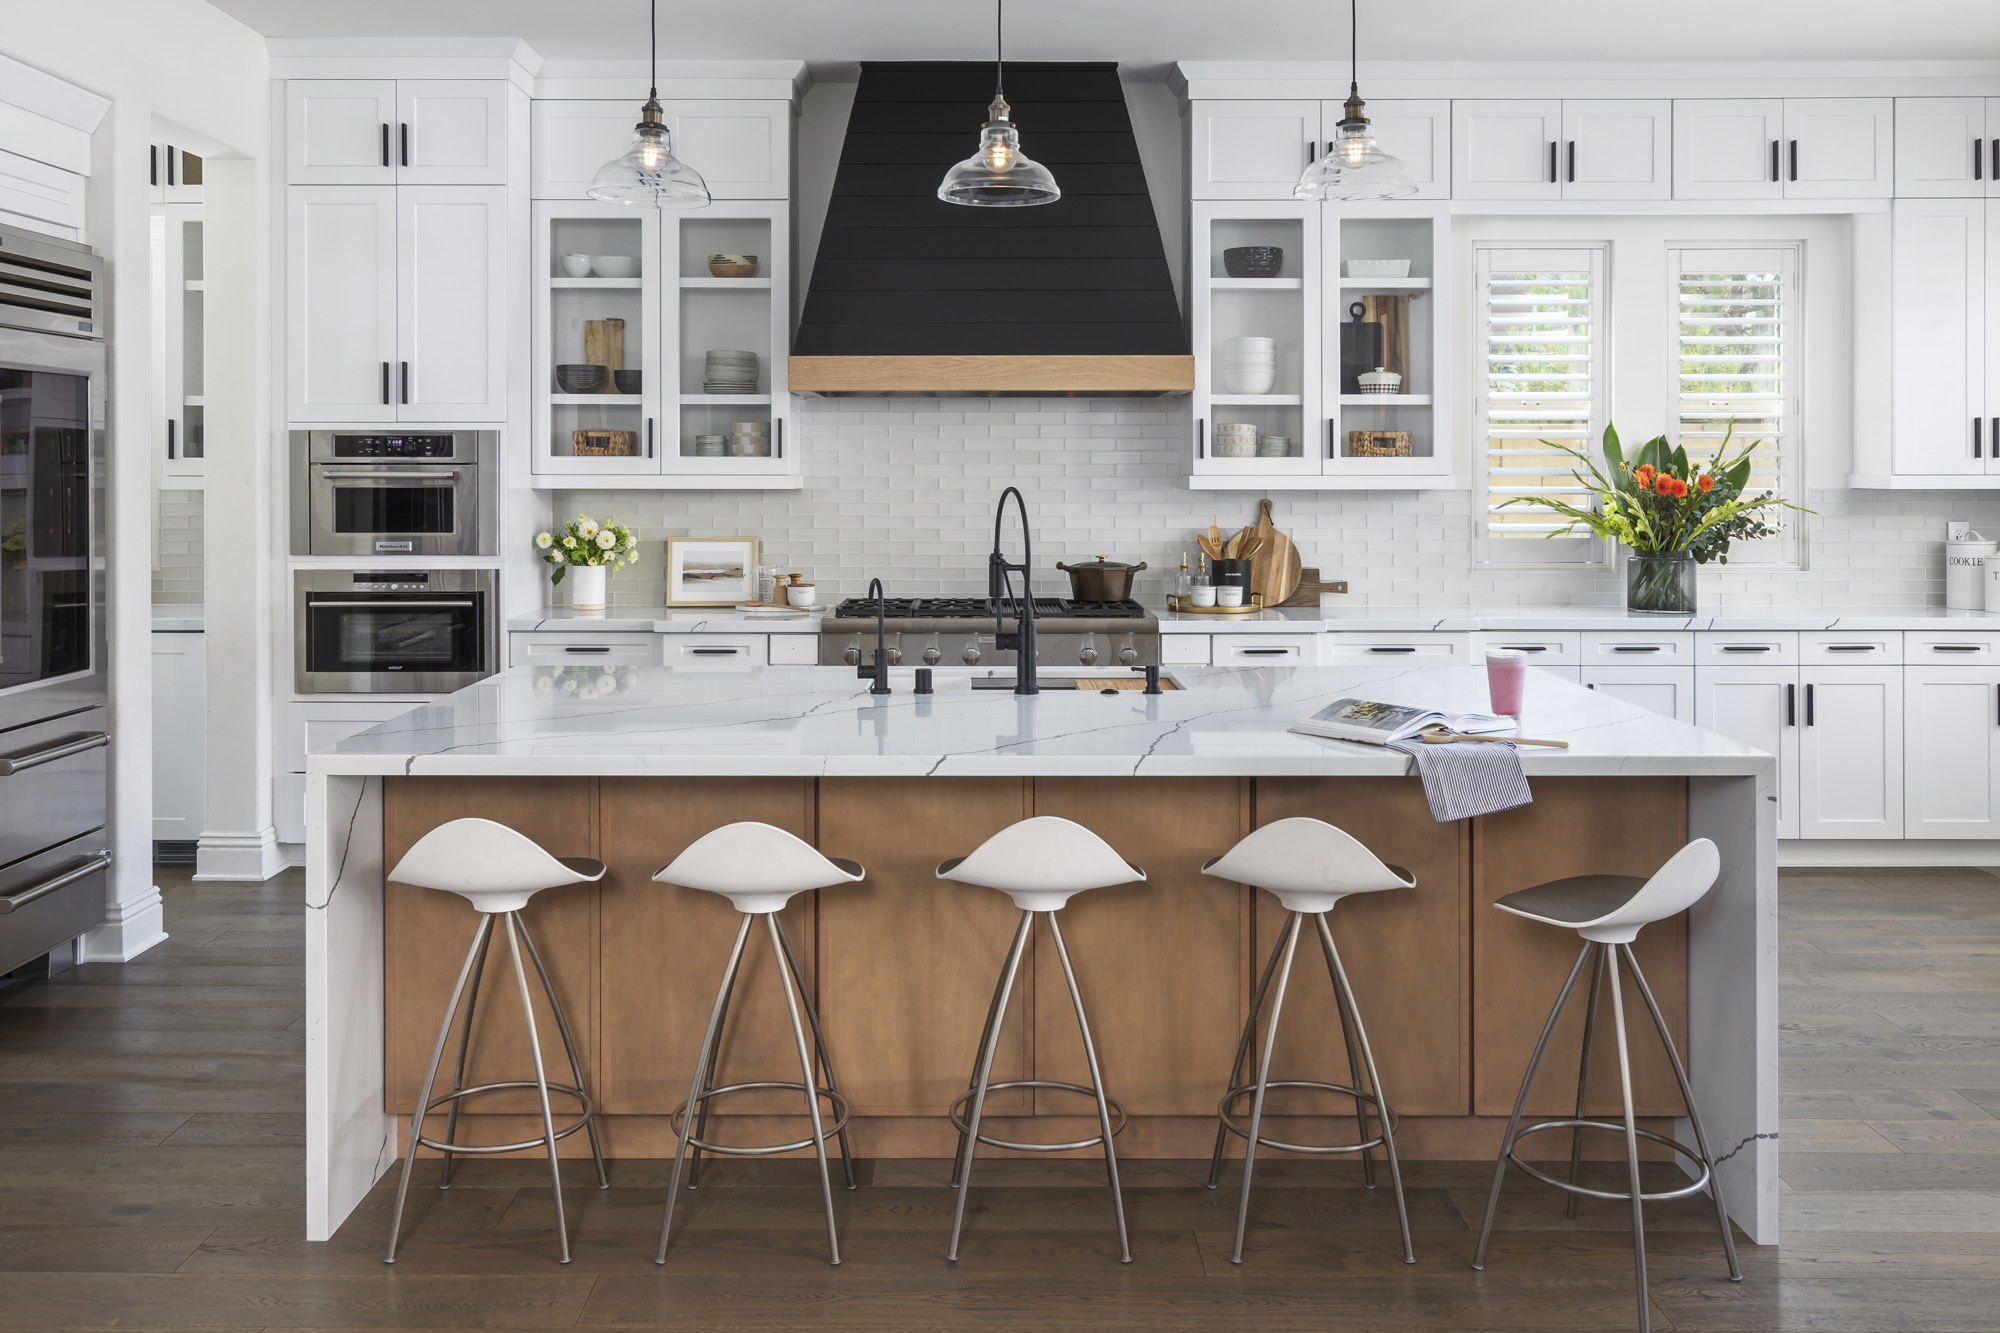 Remodeling-designers-keep-design-and-function-in-mind